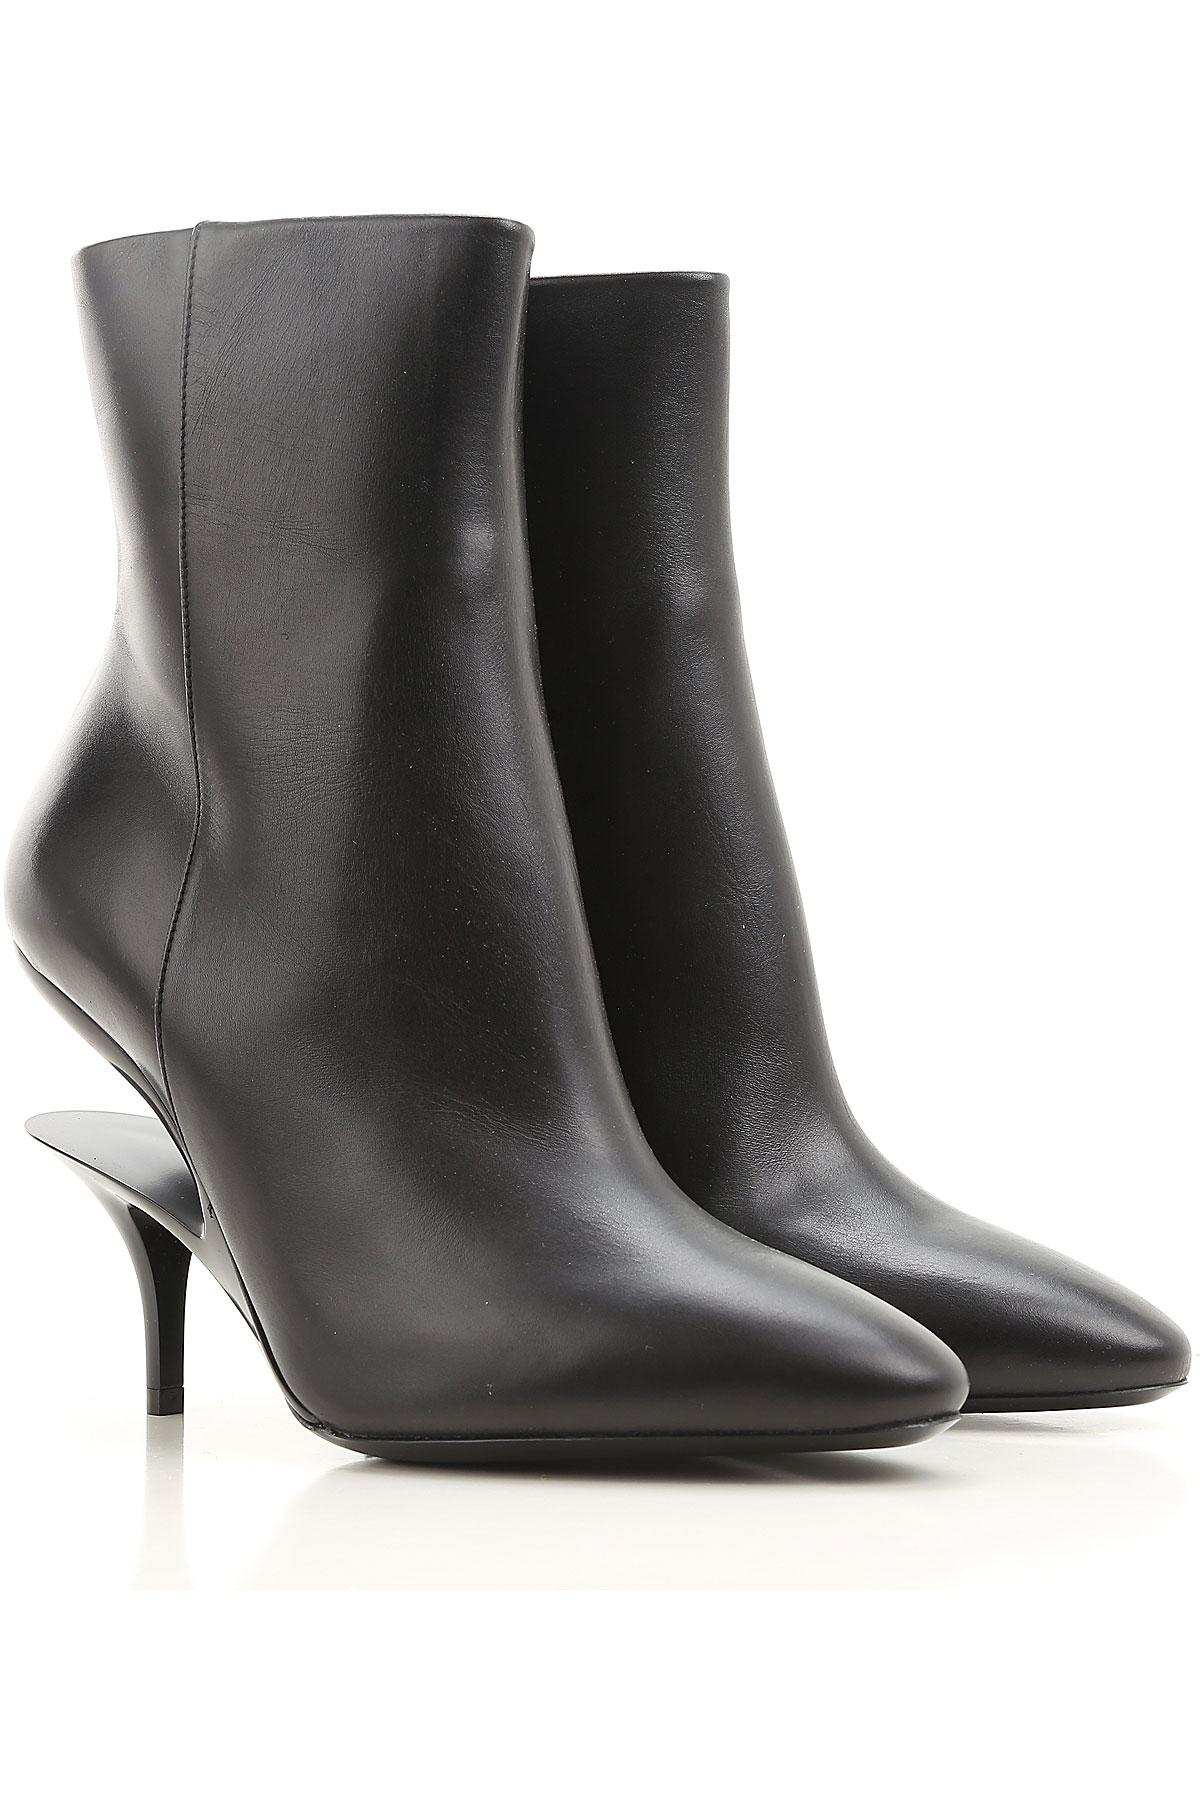 Image of Maison Martin Margiela Boots for Women, Booties On Sale, Black, Leather, 2017, 10 6 6.5 7 8 8.5